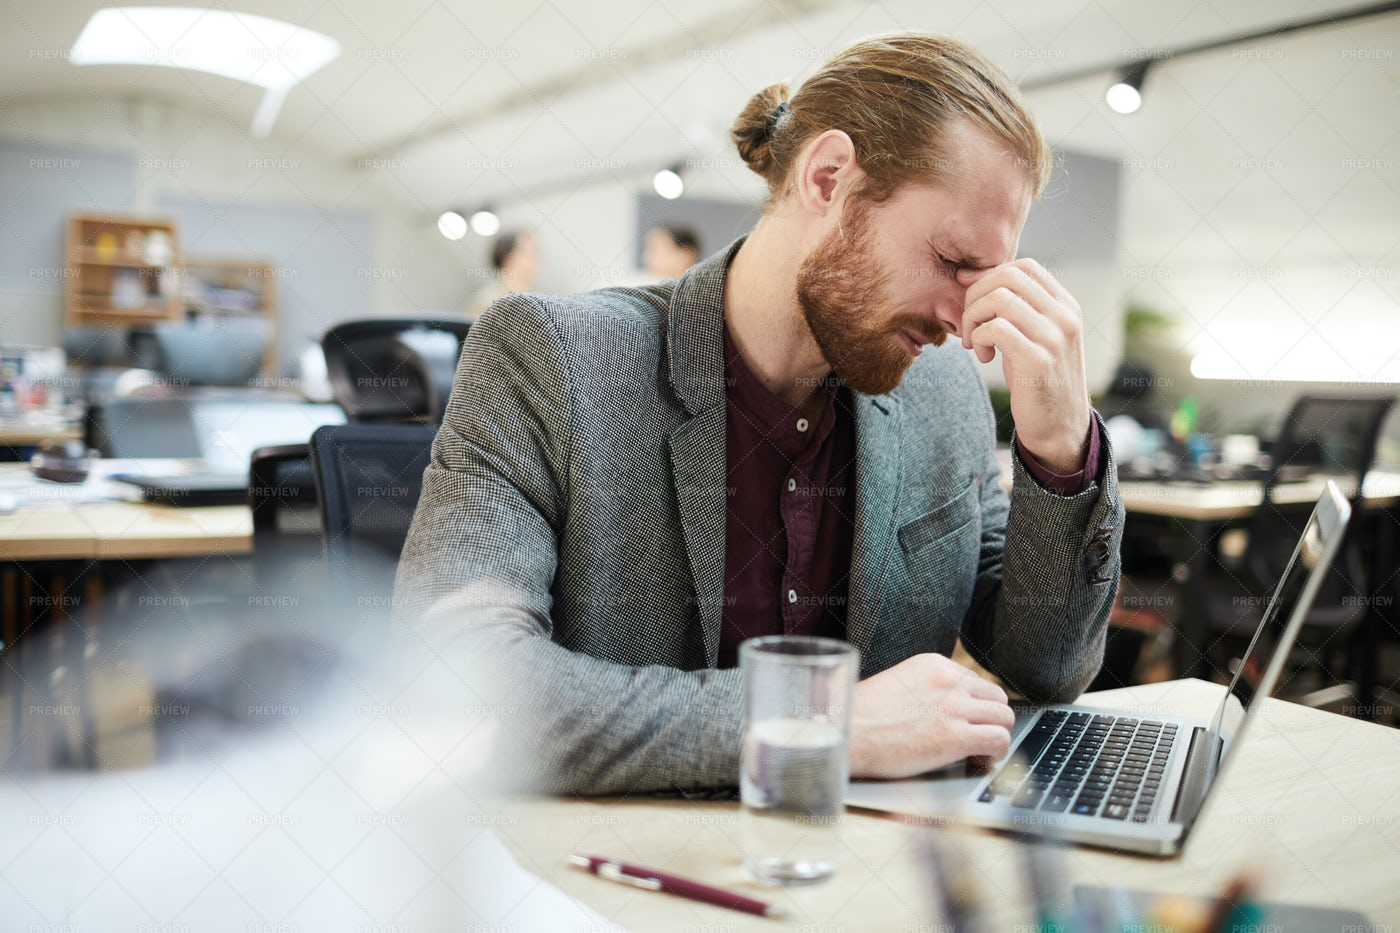 Exhausted Businessman Working In...: Stock Photos